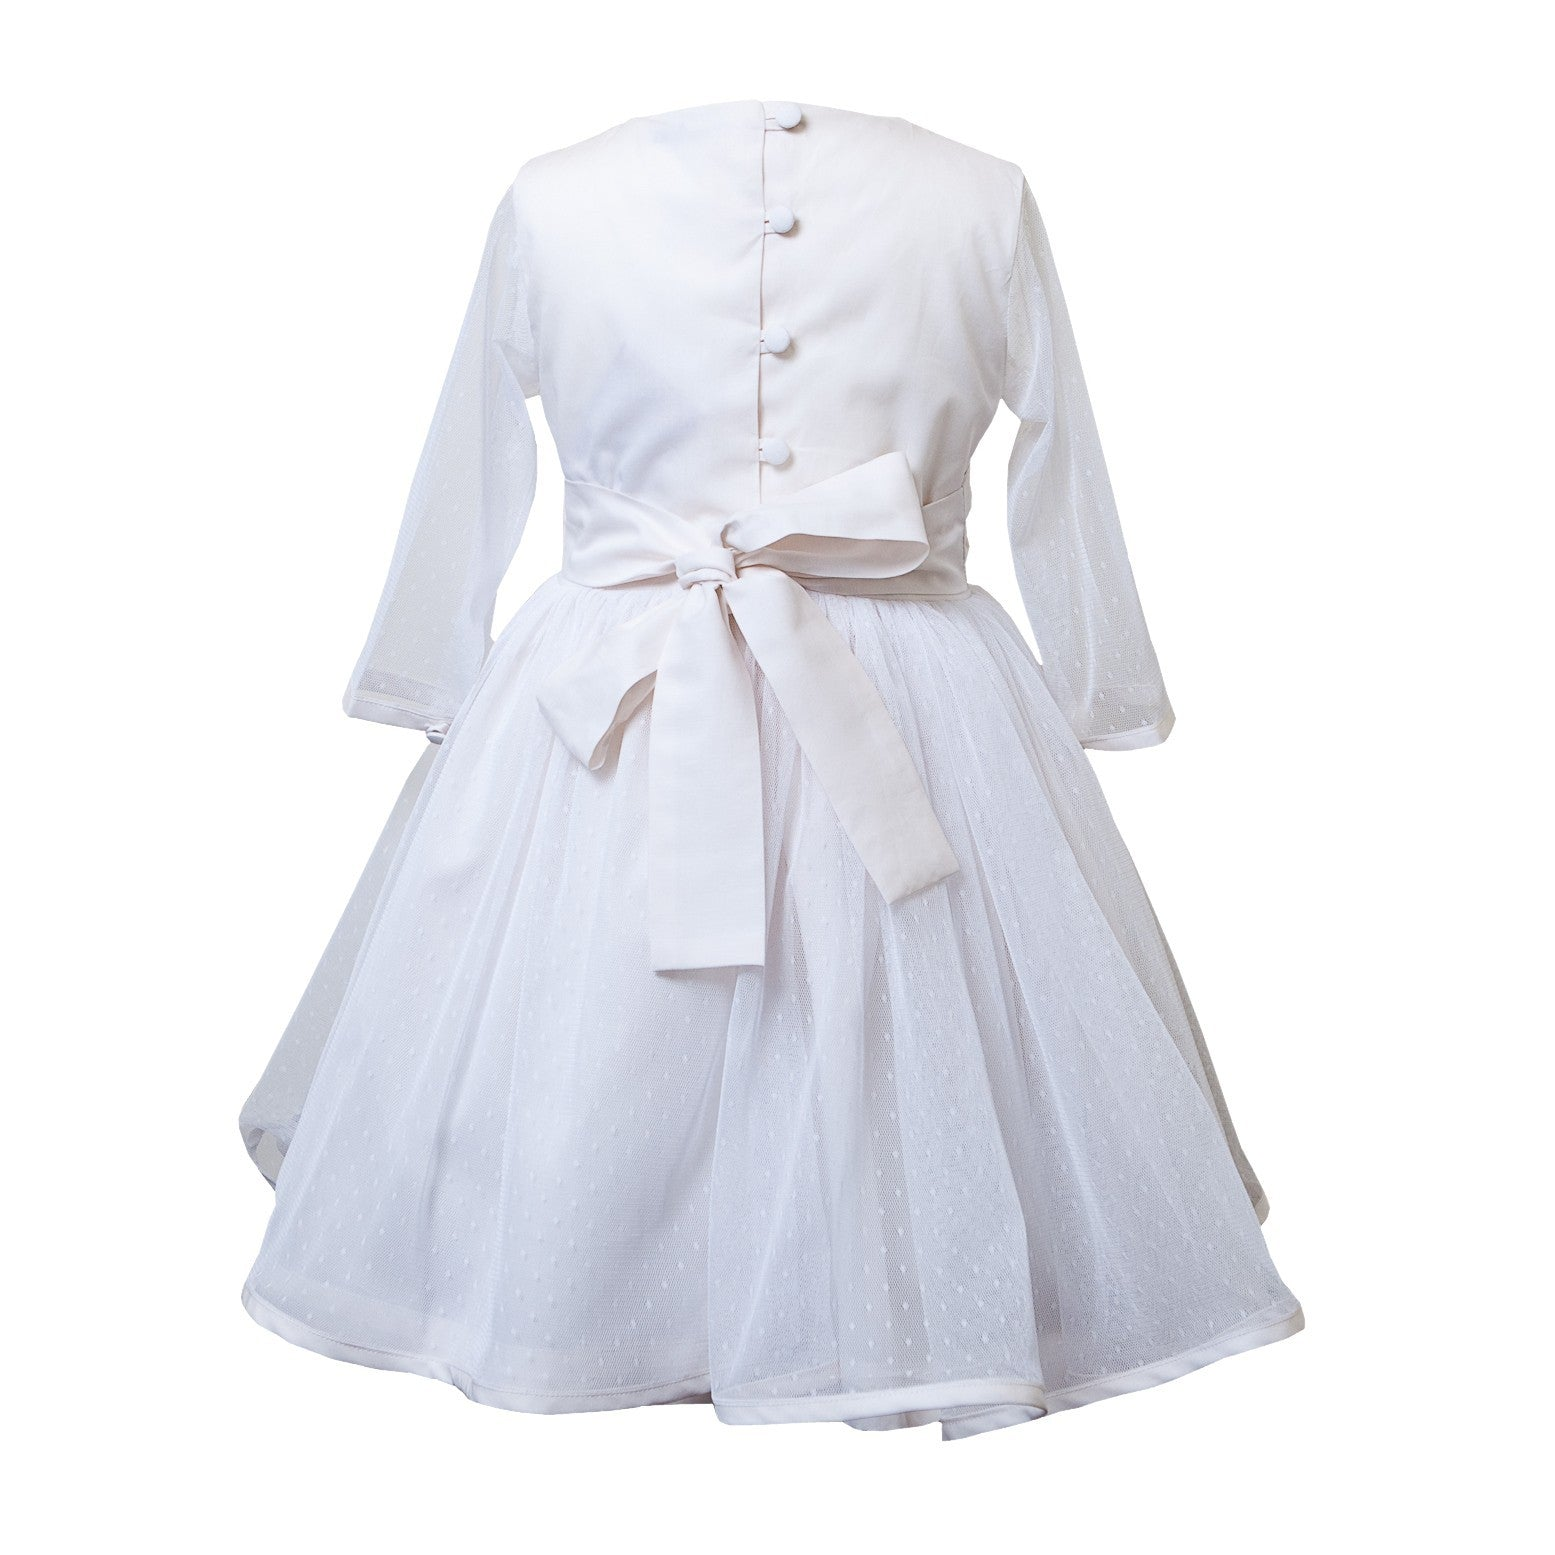 Sue Hill first communion dress Amy Tulle